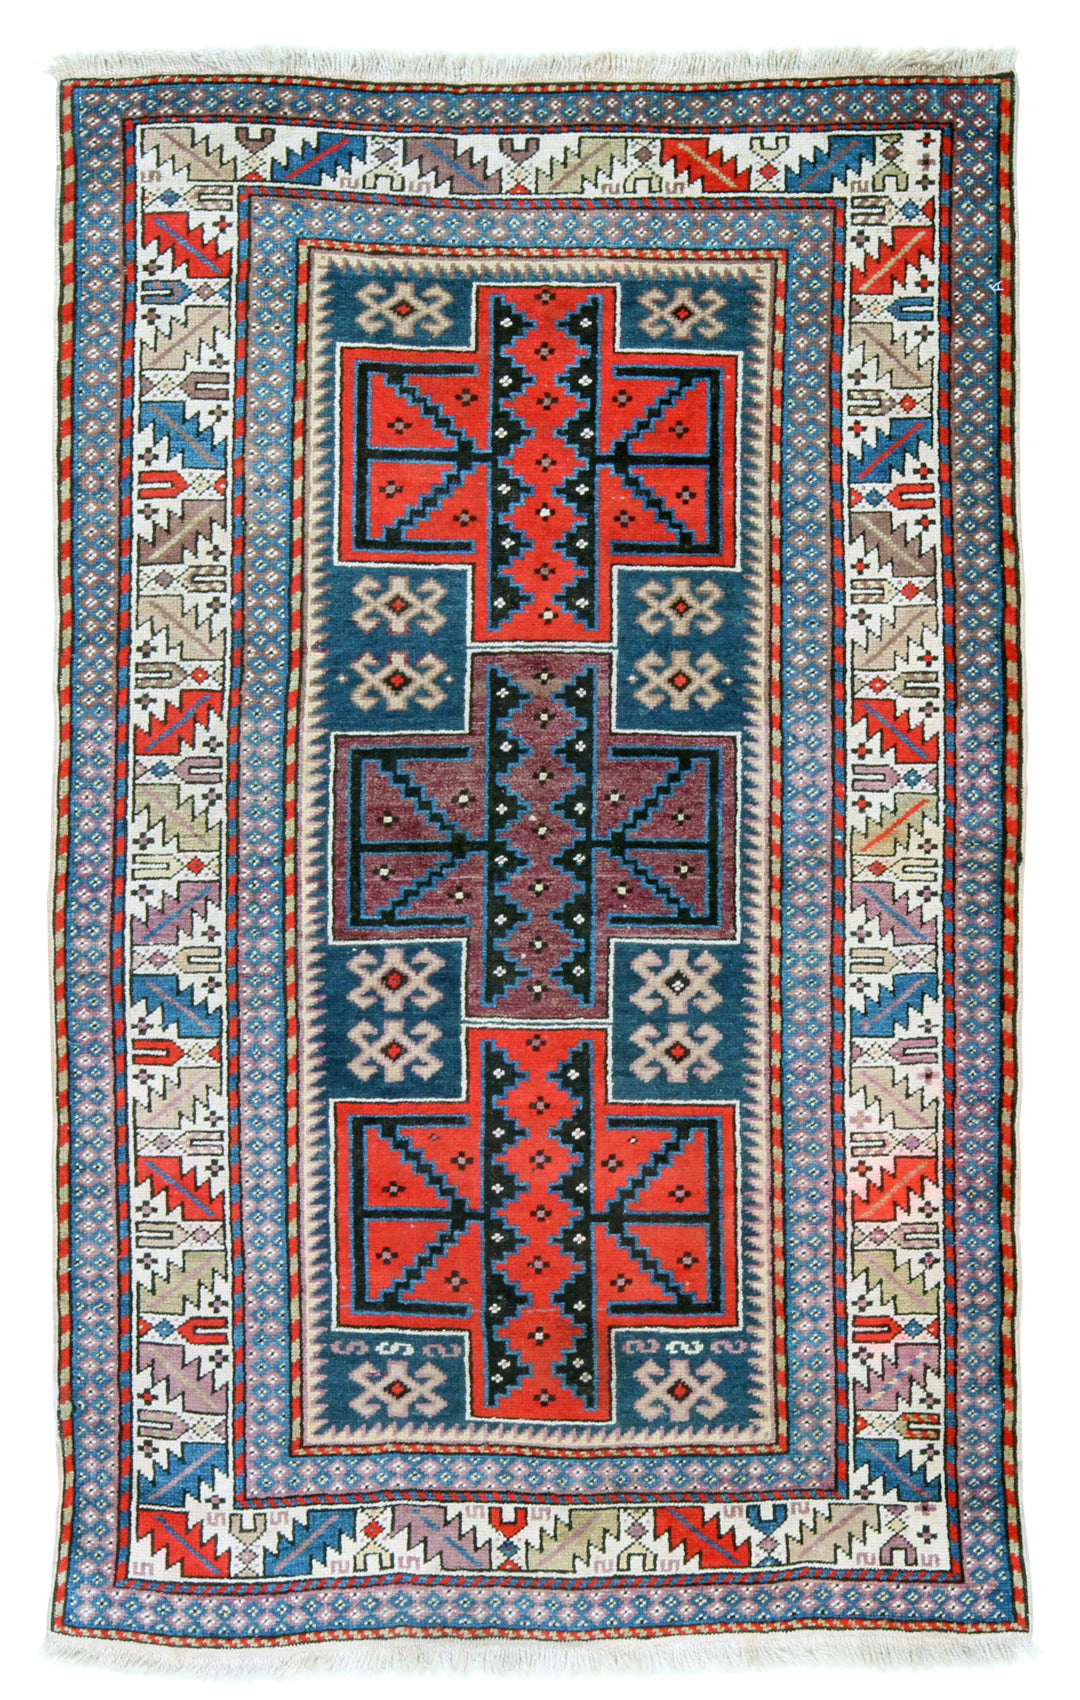 Kazak Antique Rug-Turco Persian Rug Company Inc.